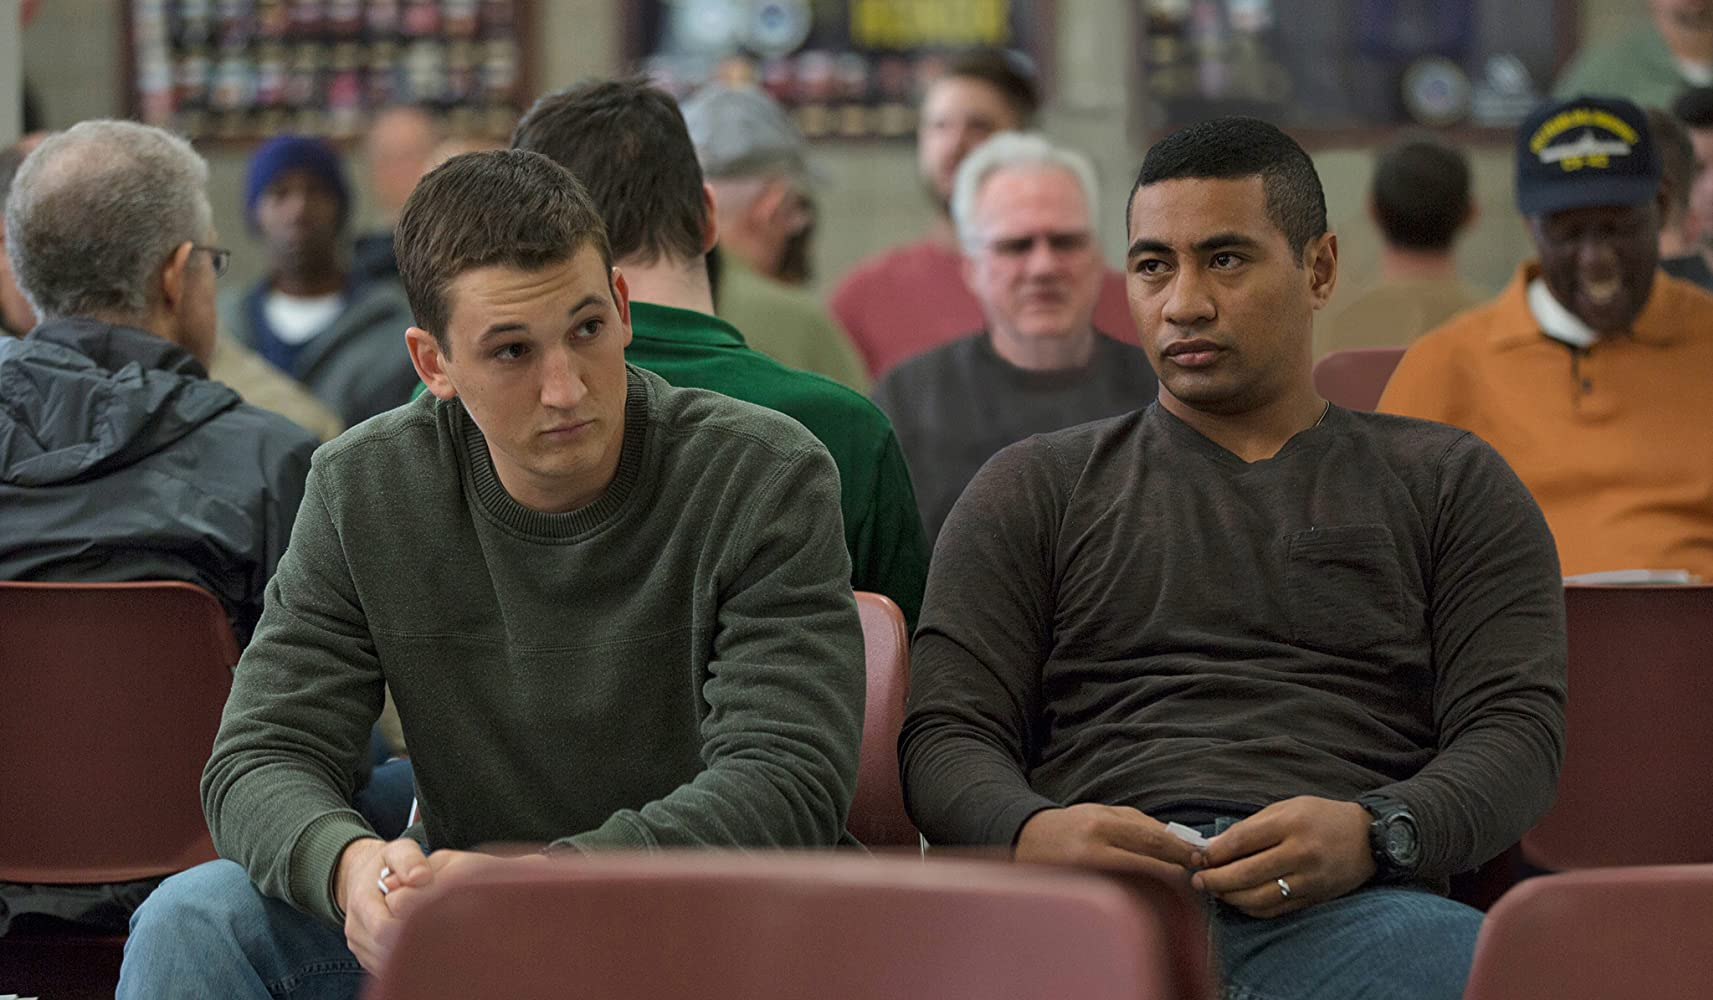 Miles Teller and Beulah Koale in Thank You for Your Service (2017)